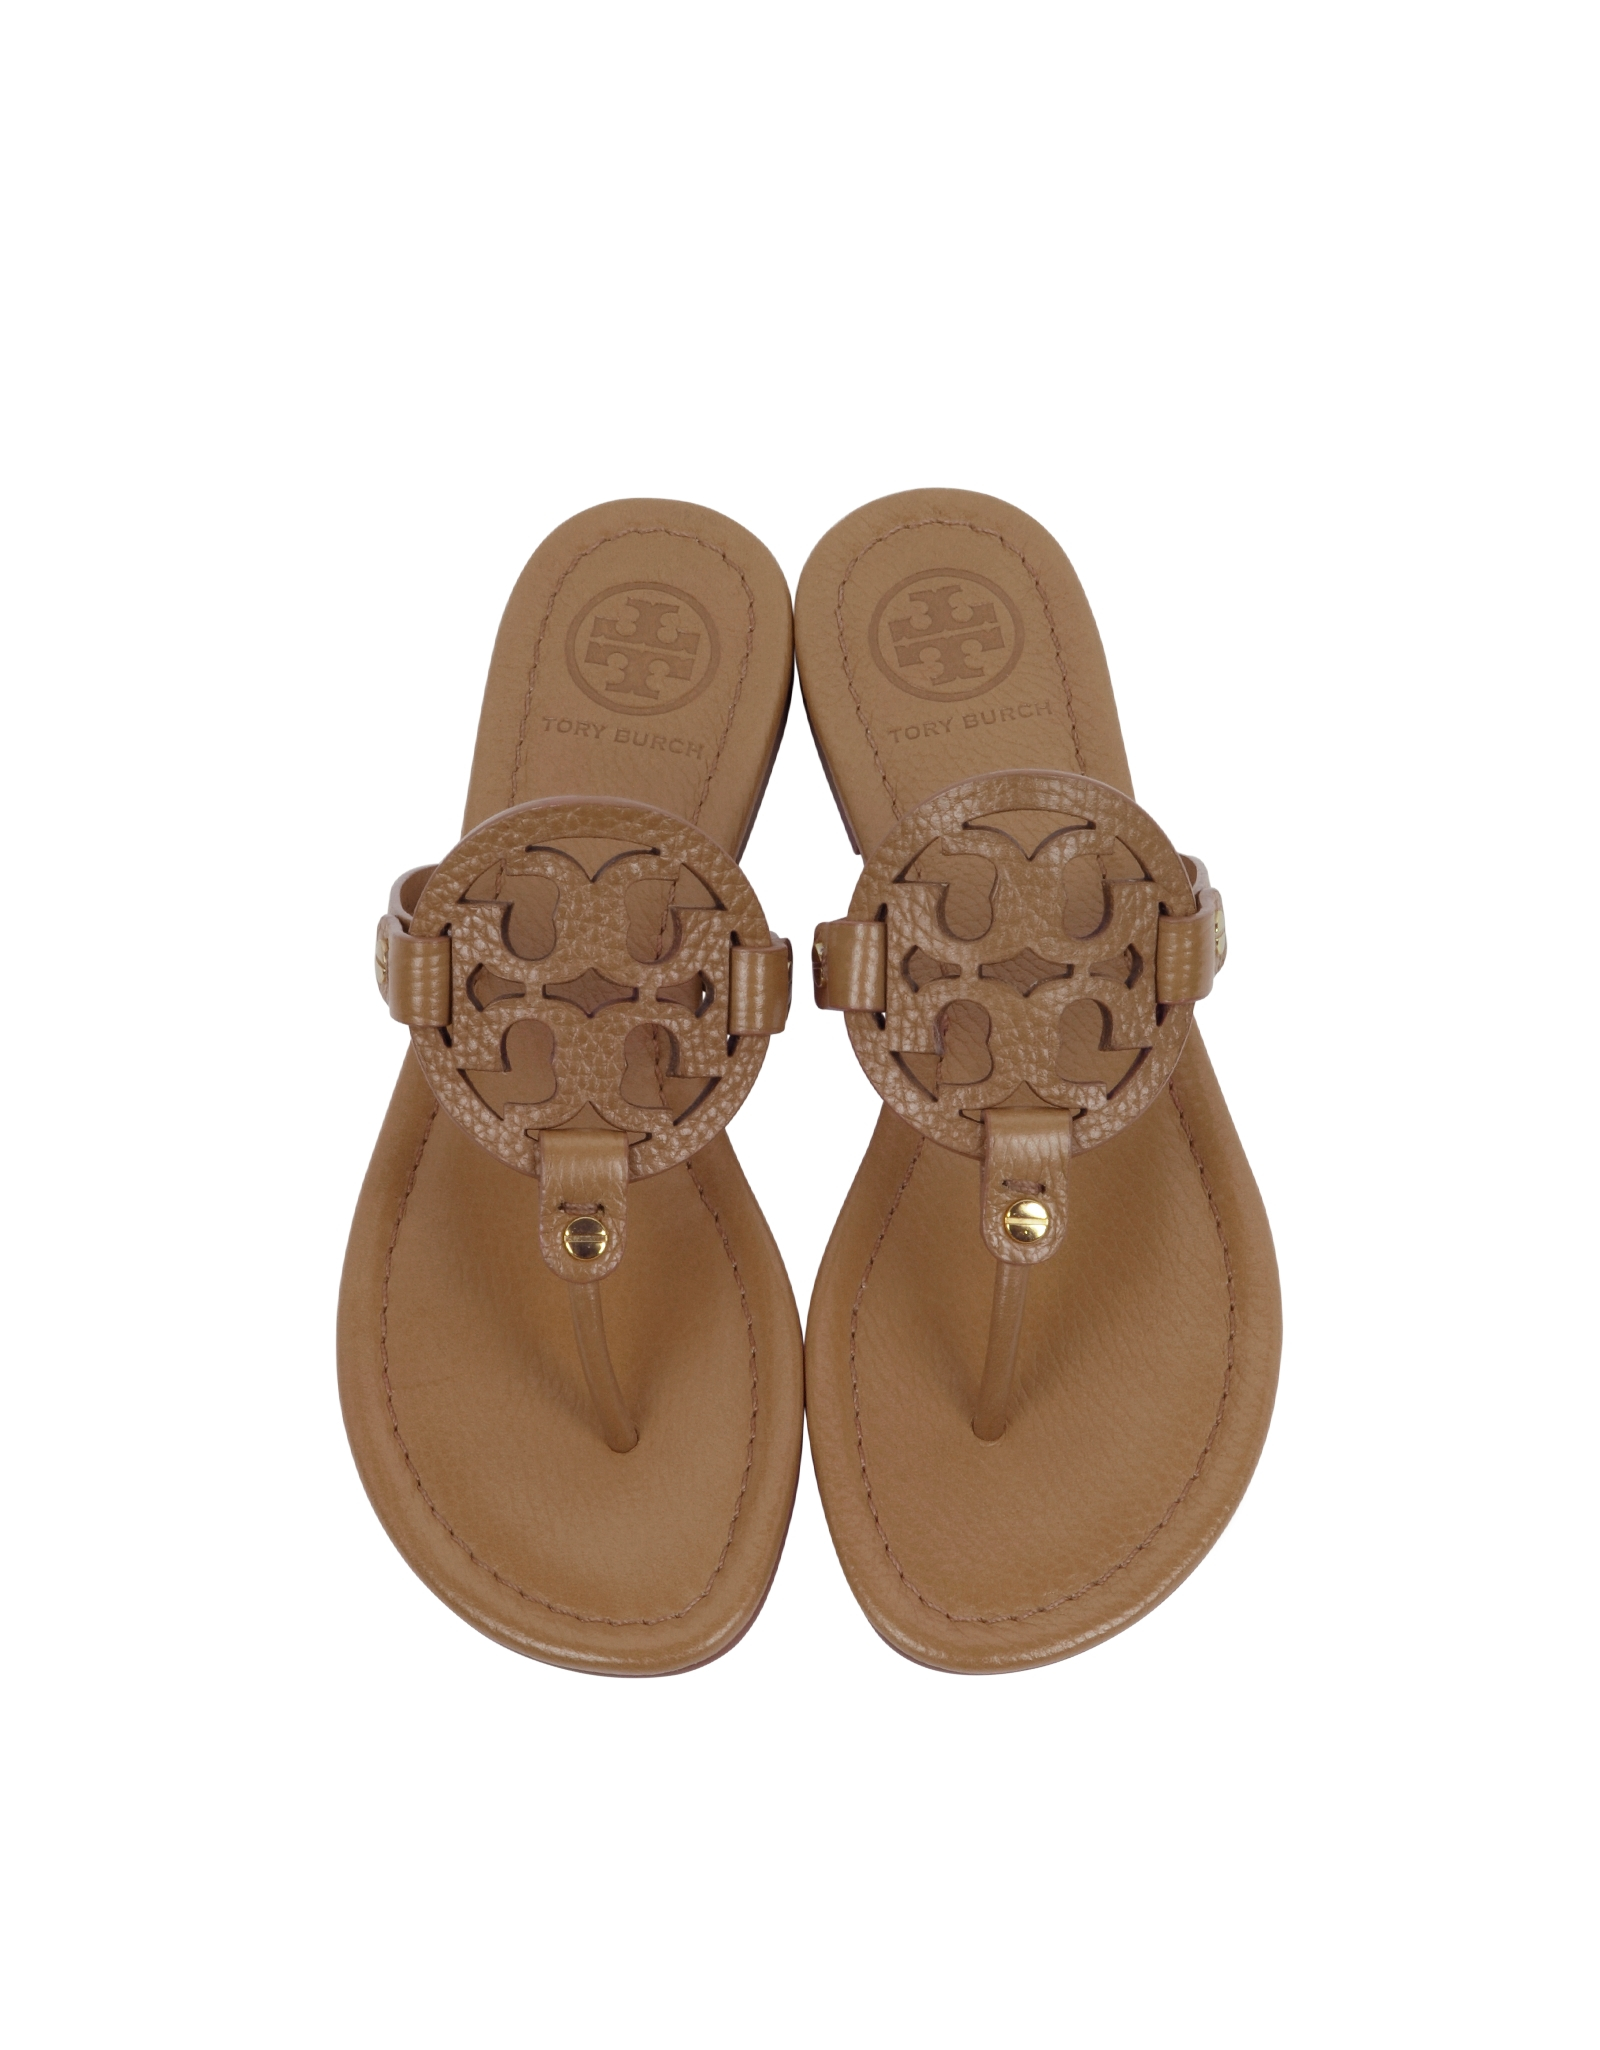 0d39c5a04 Tory Burch Miller Royal Tan Leather Sandal in Brown - Lyst